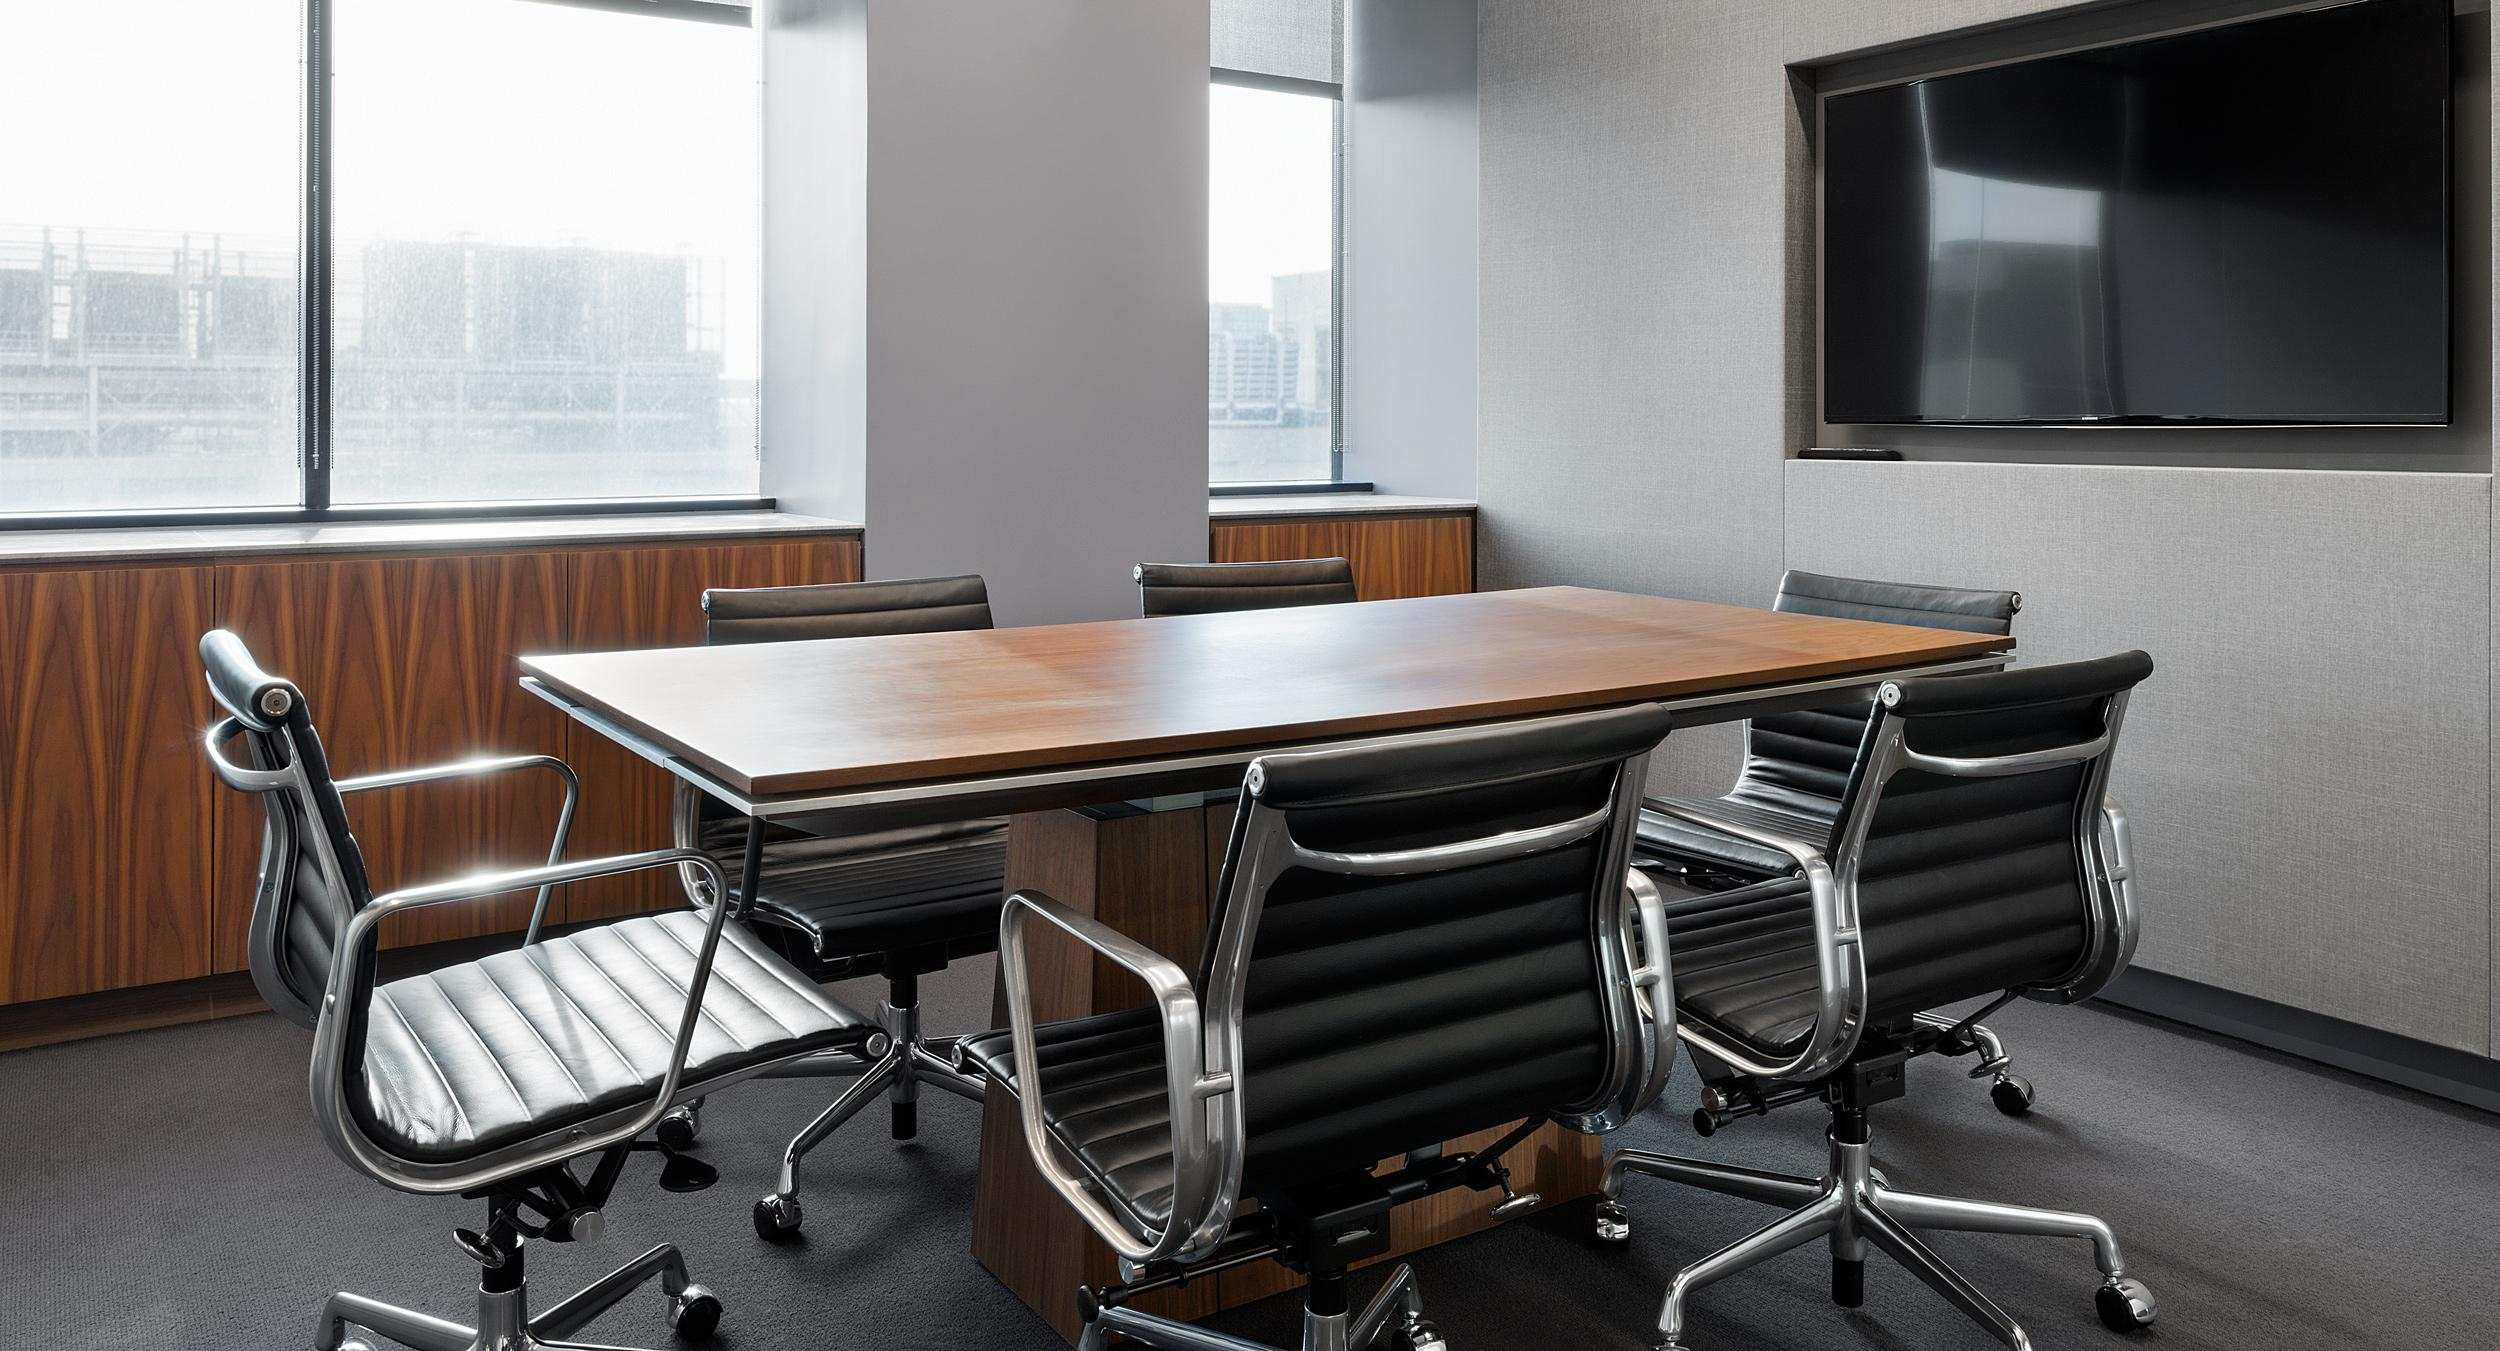 MESA tables were provided in sizes to fit a range of meeting spaces.